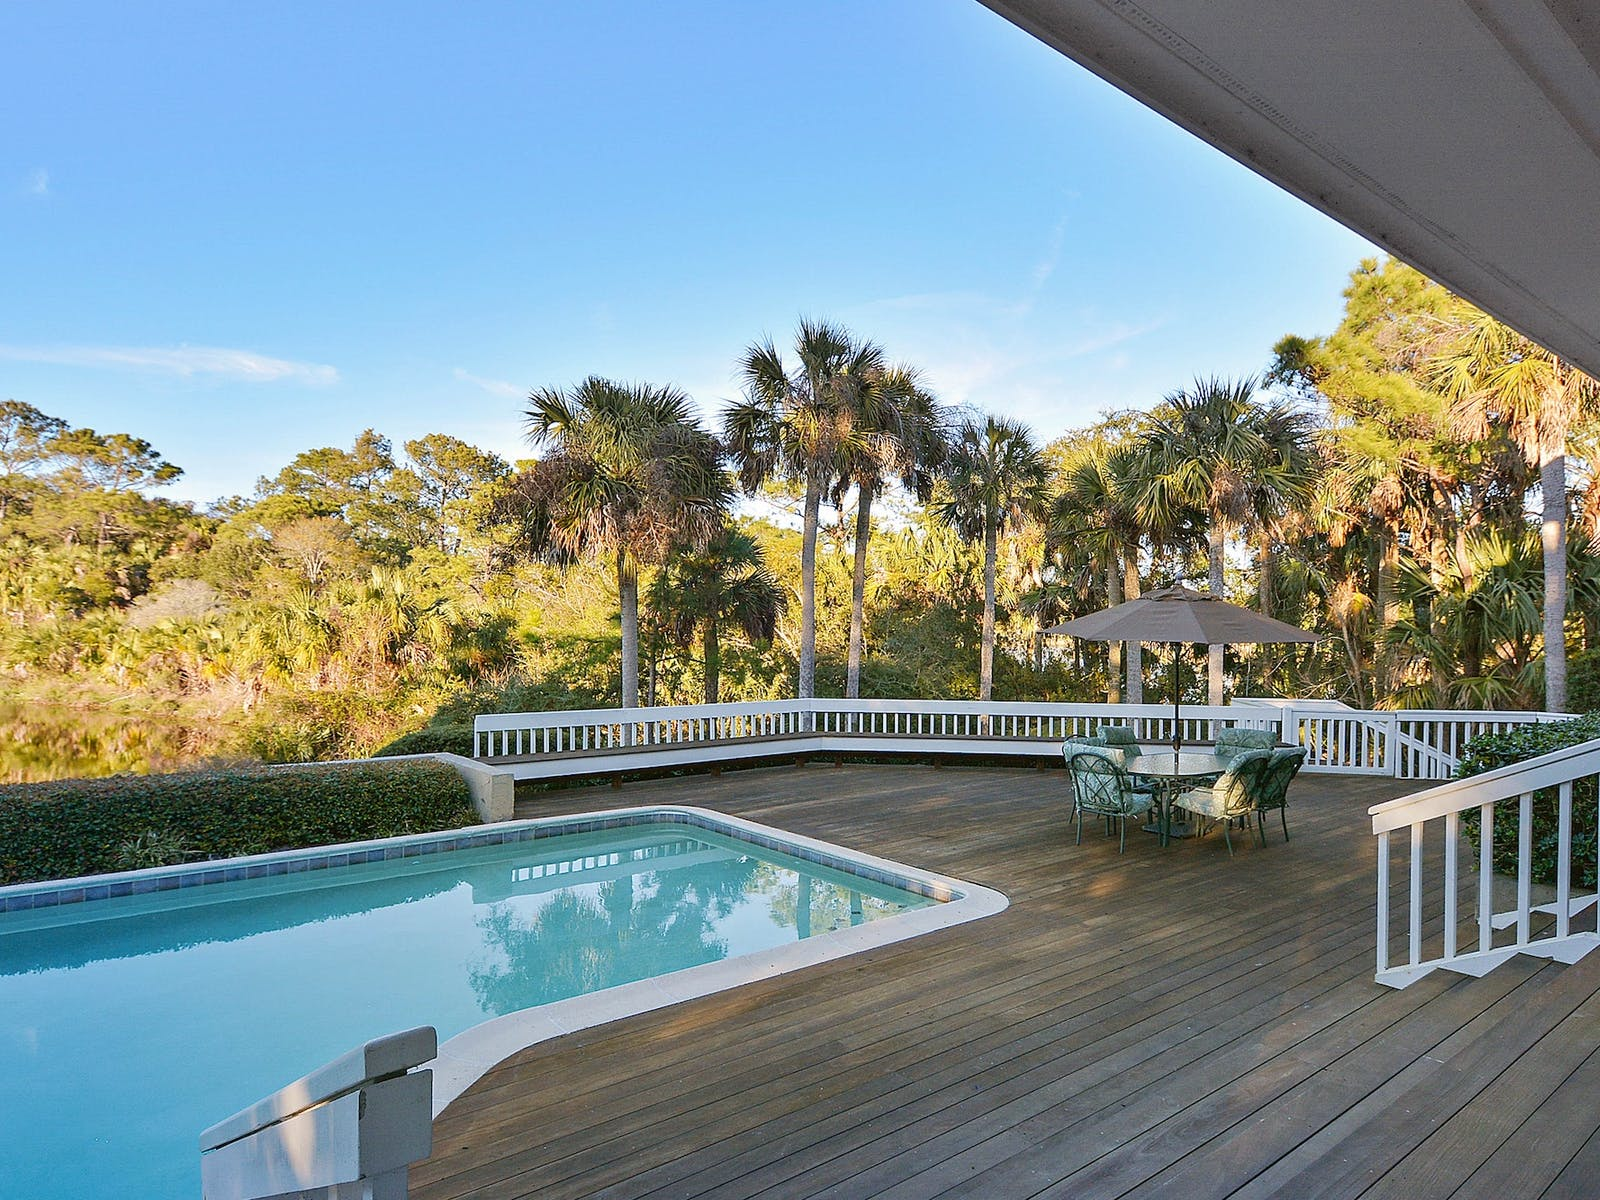 Vacation rental deck with pool in Kiawah Island, SC